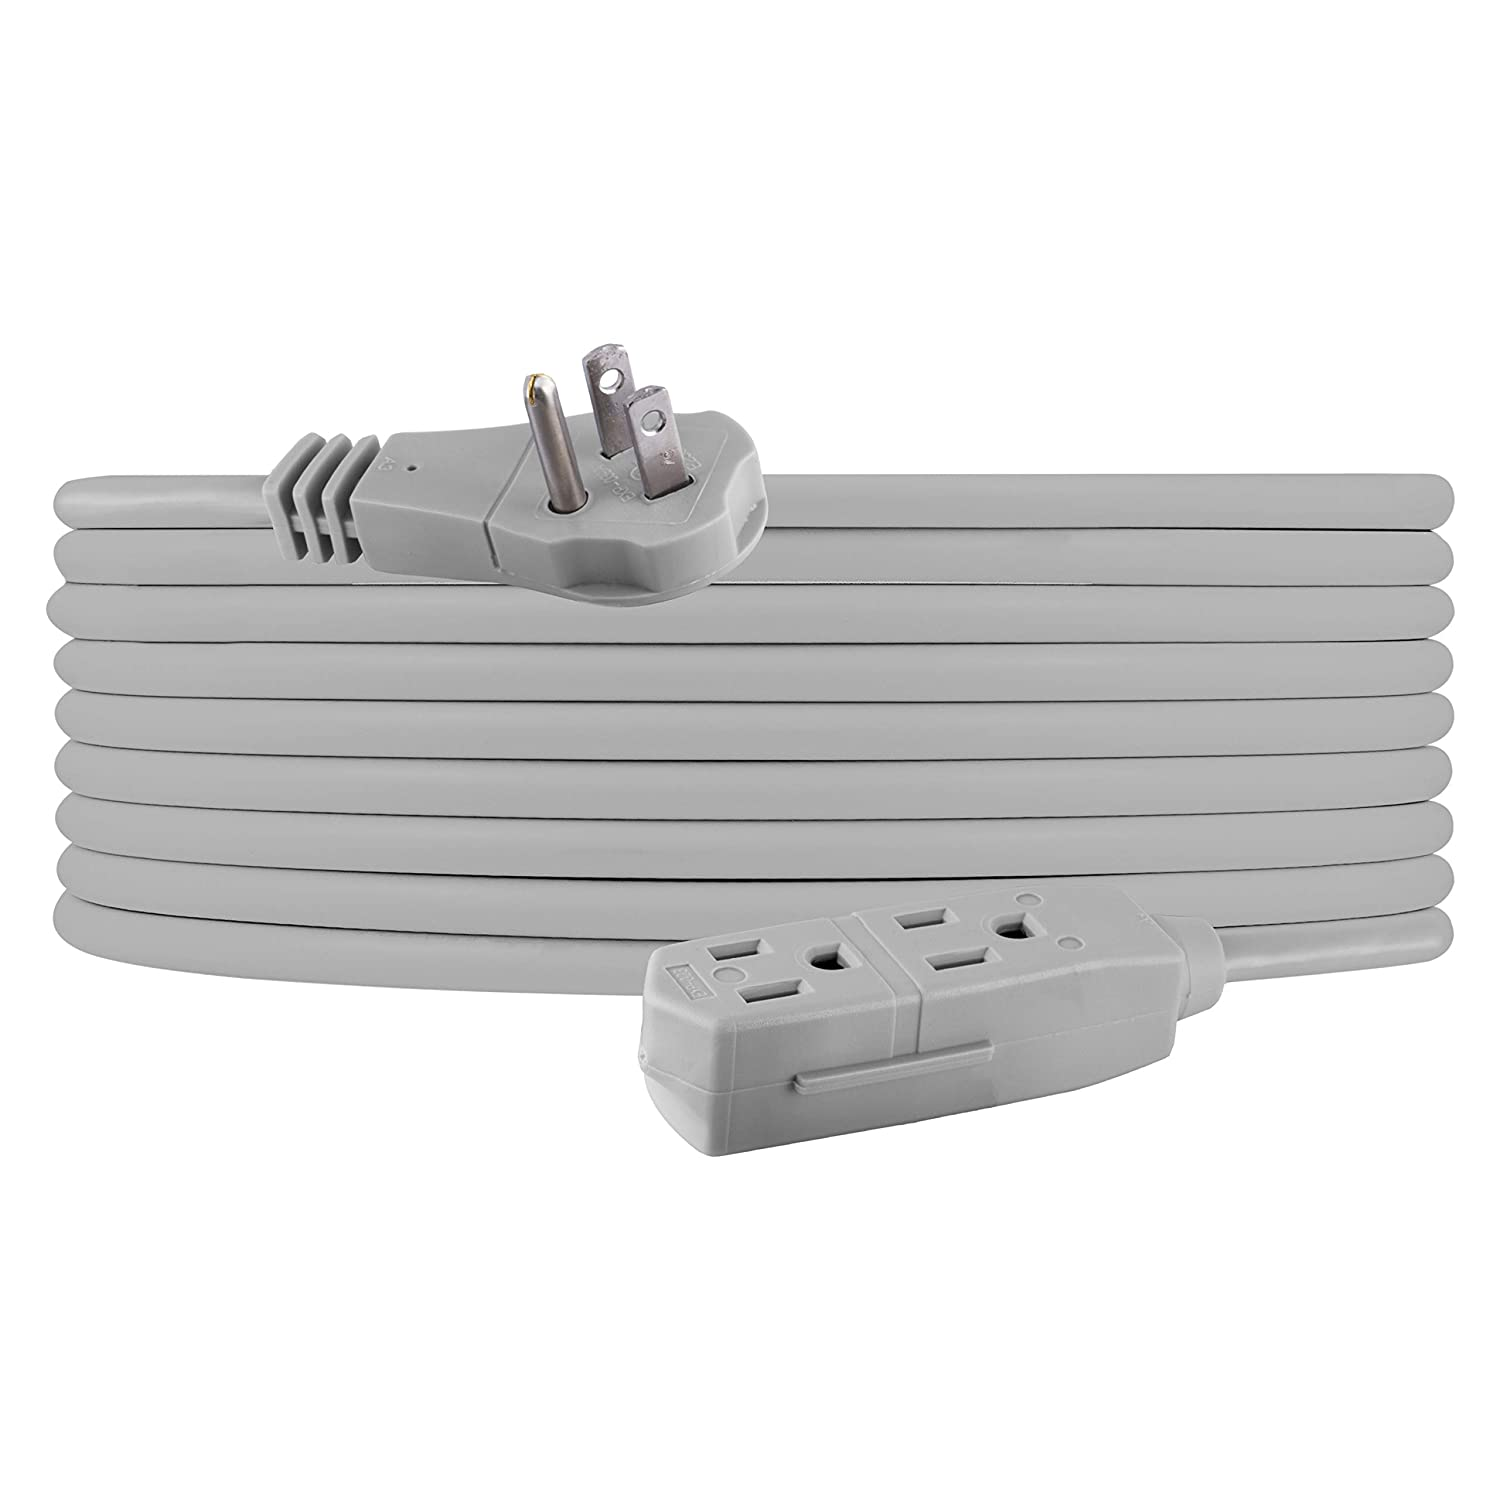 GE Indoor Office Extension Cord, Extra Long 25ft Power Cable, 3 Grounded Outlets, 3 Prong, Low-Profile Right Angle Flat Plug, 16 Gauge, UL Listed, Gray, 43025